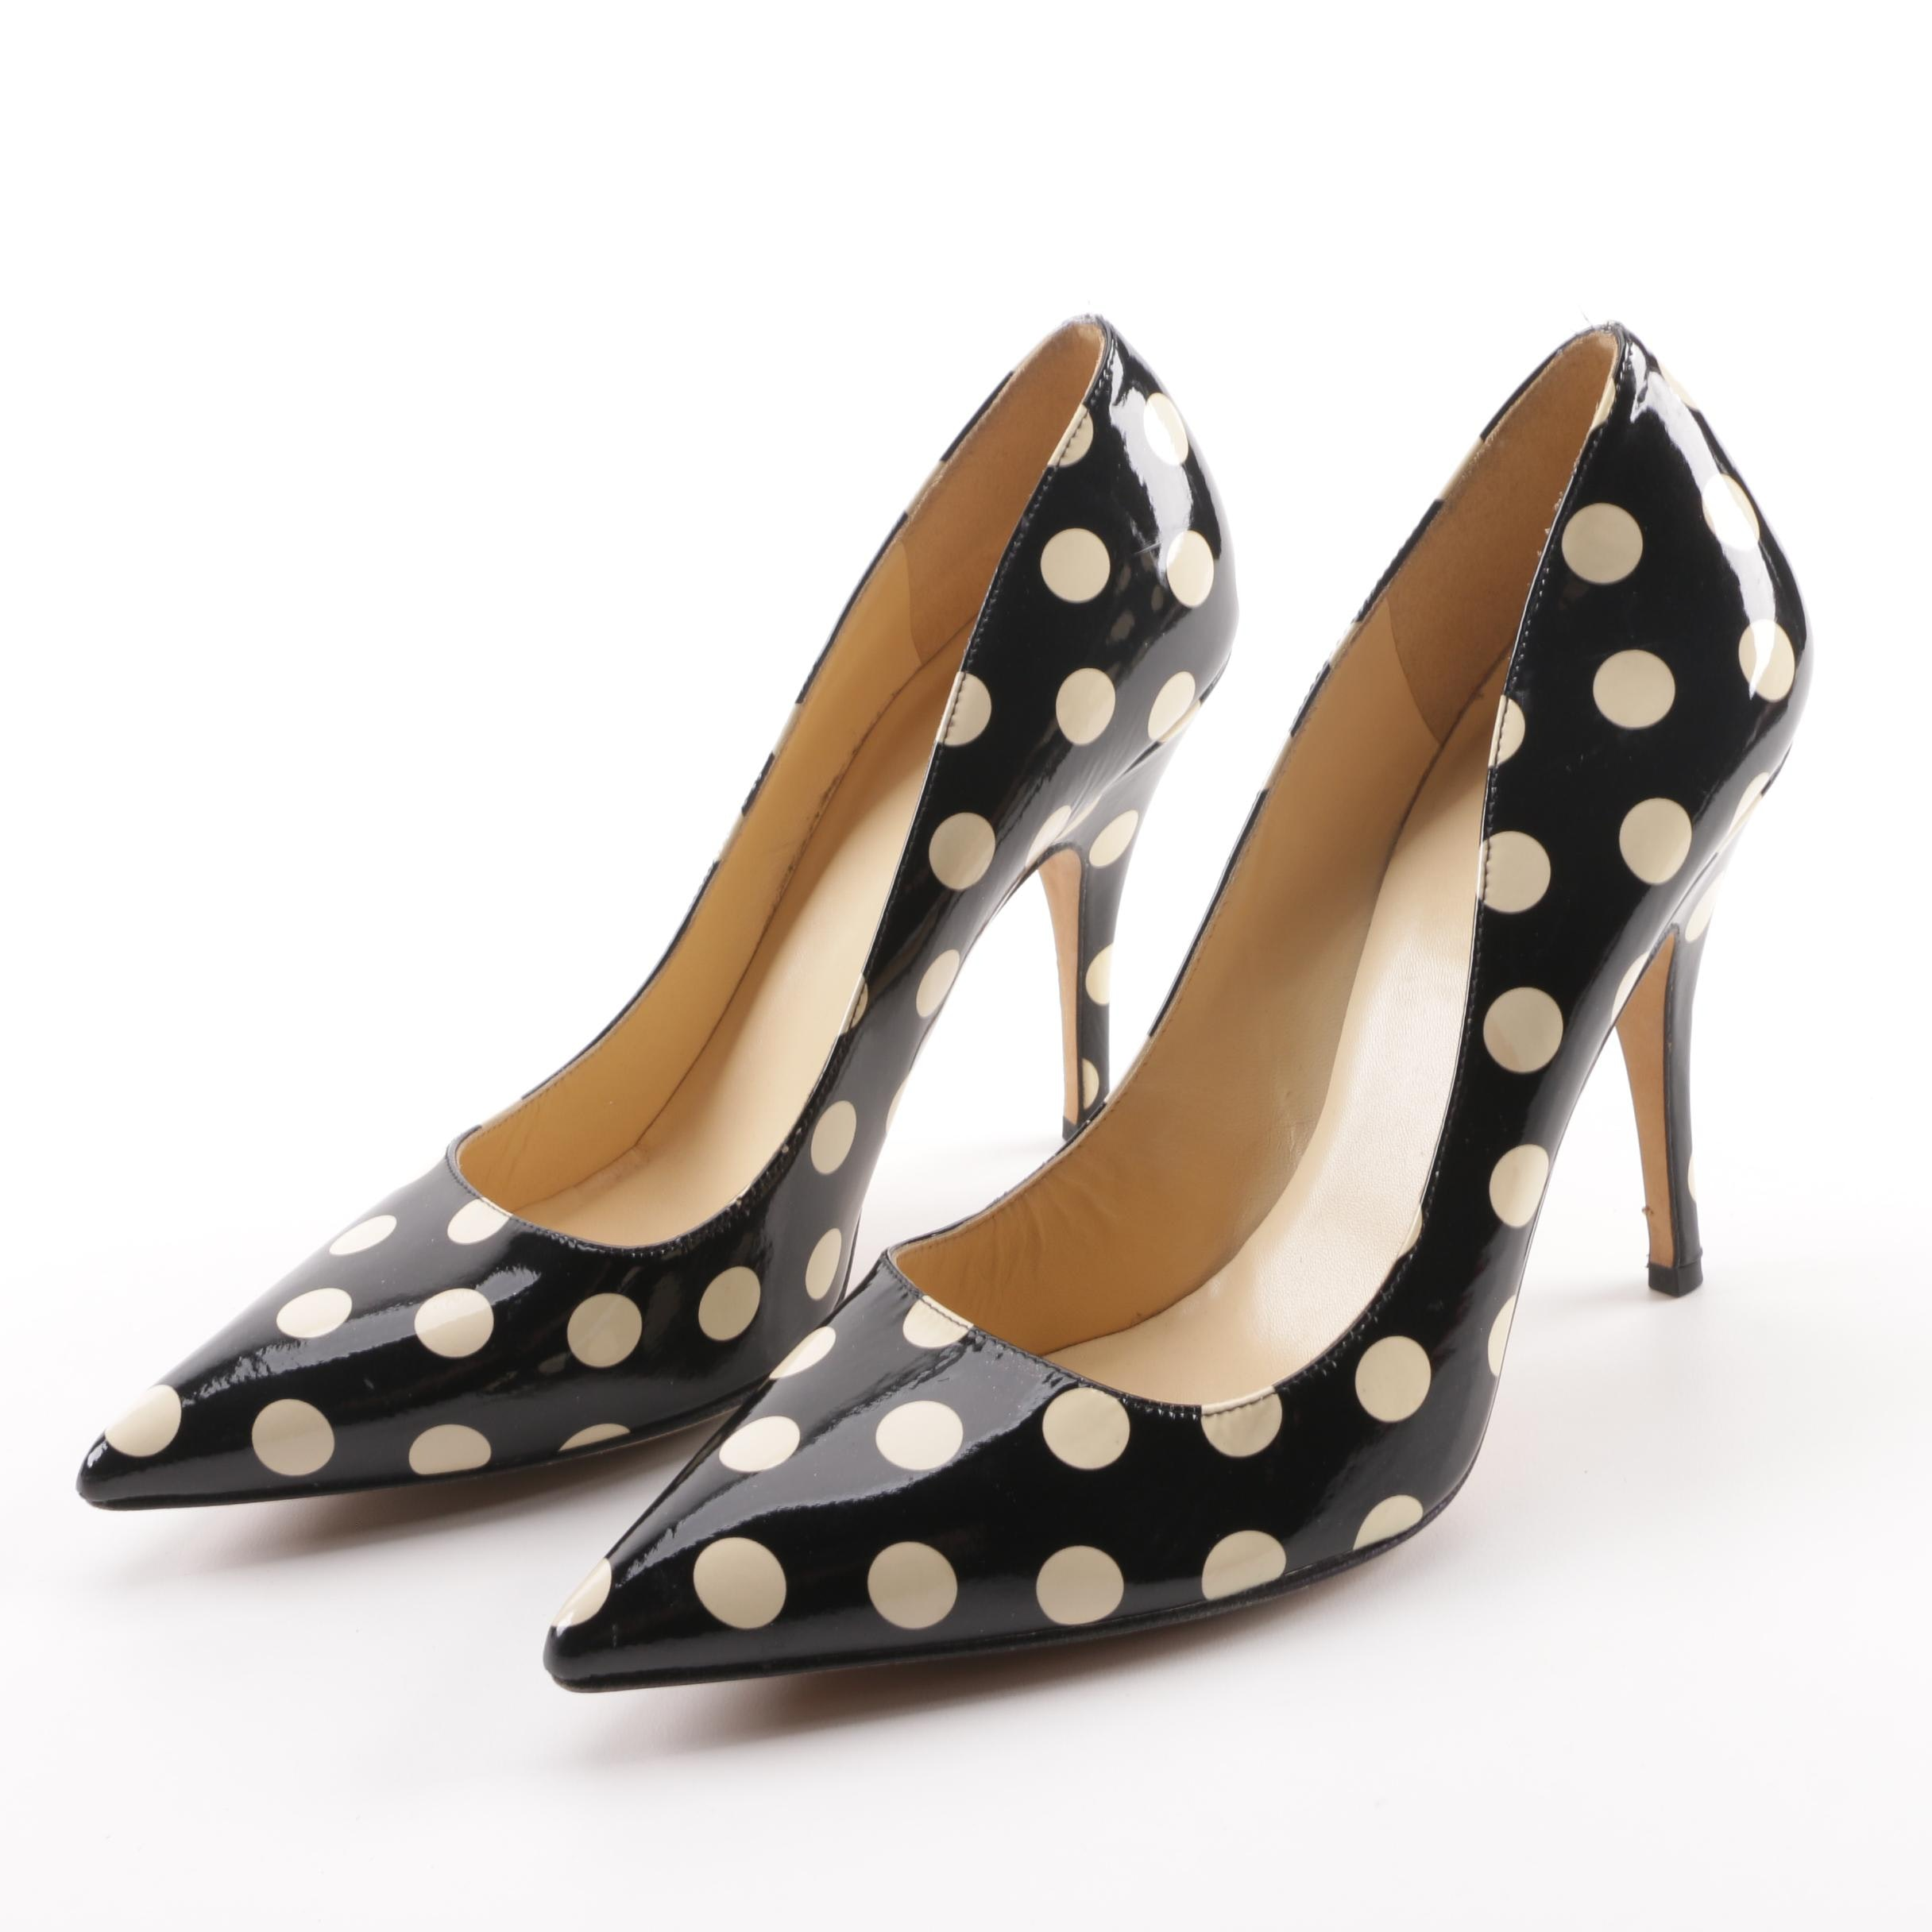 Kate Spade New York Black and Cream Patent Leather Polka Dot Pumps